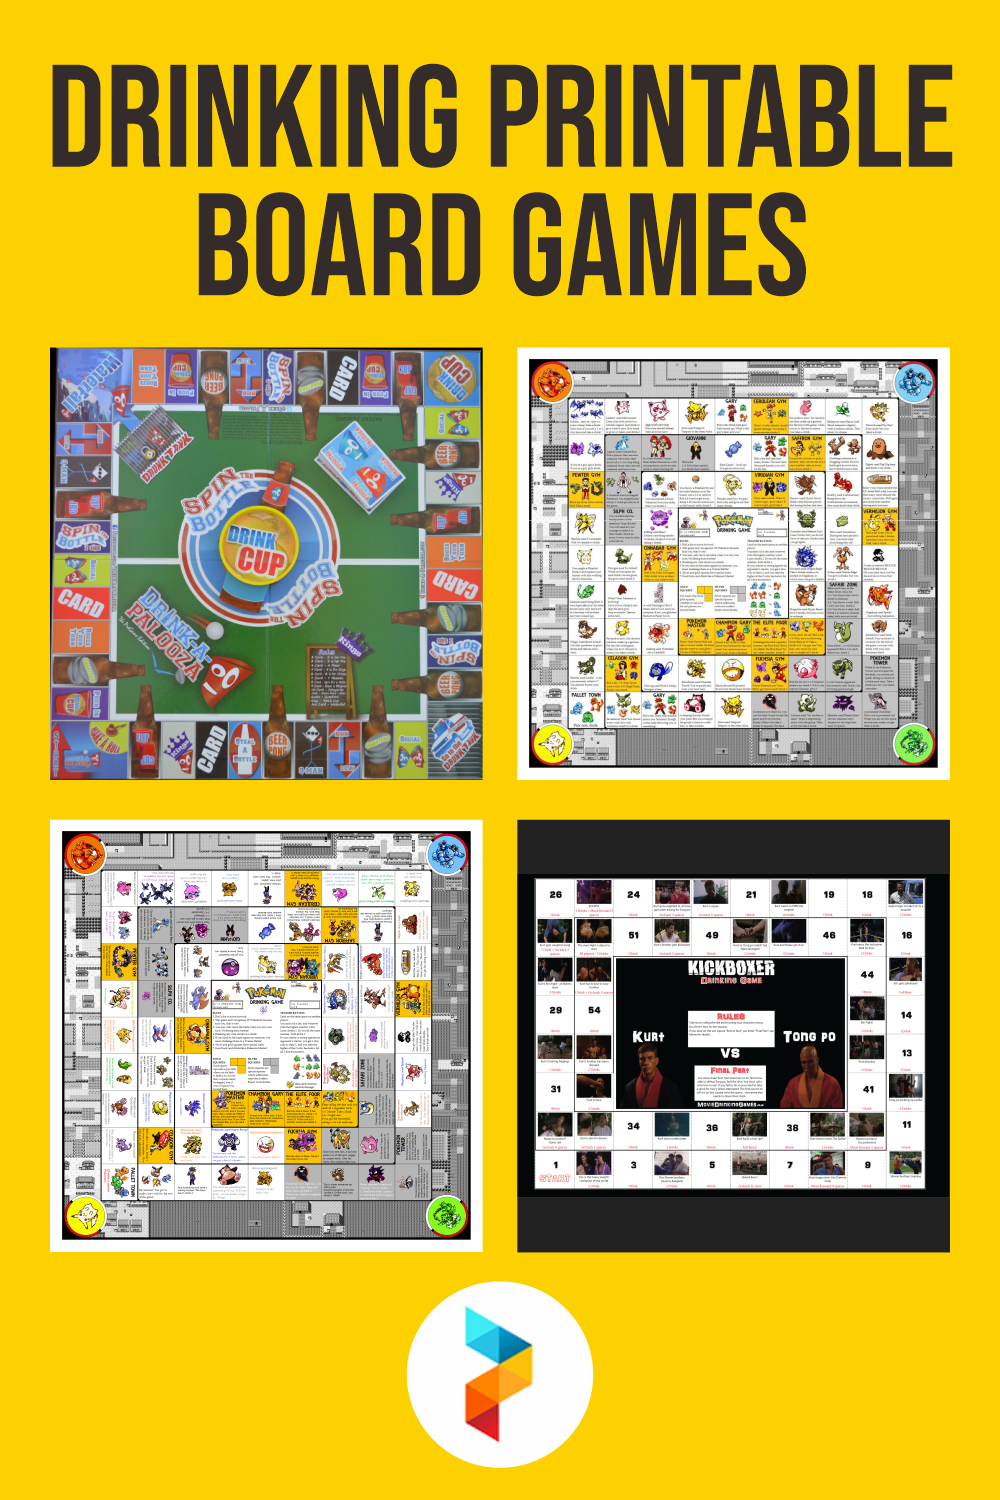 Drinking Printable Board Games